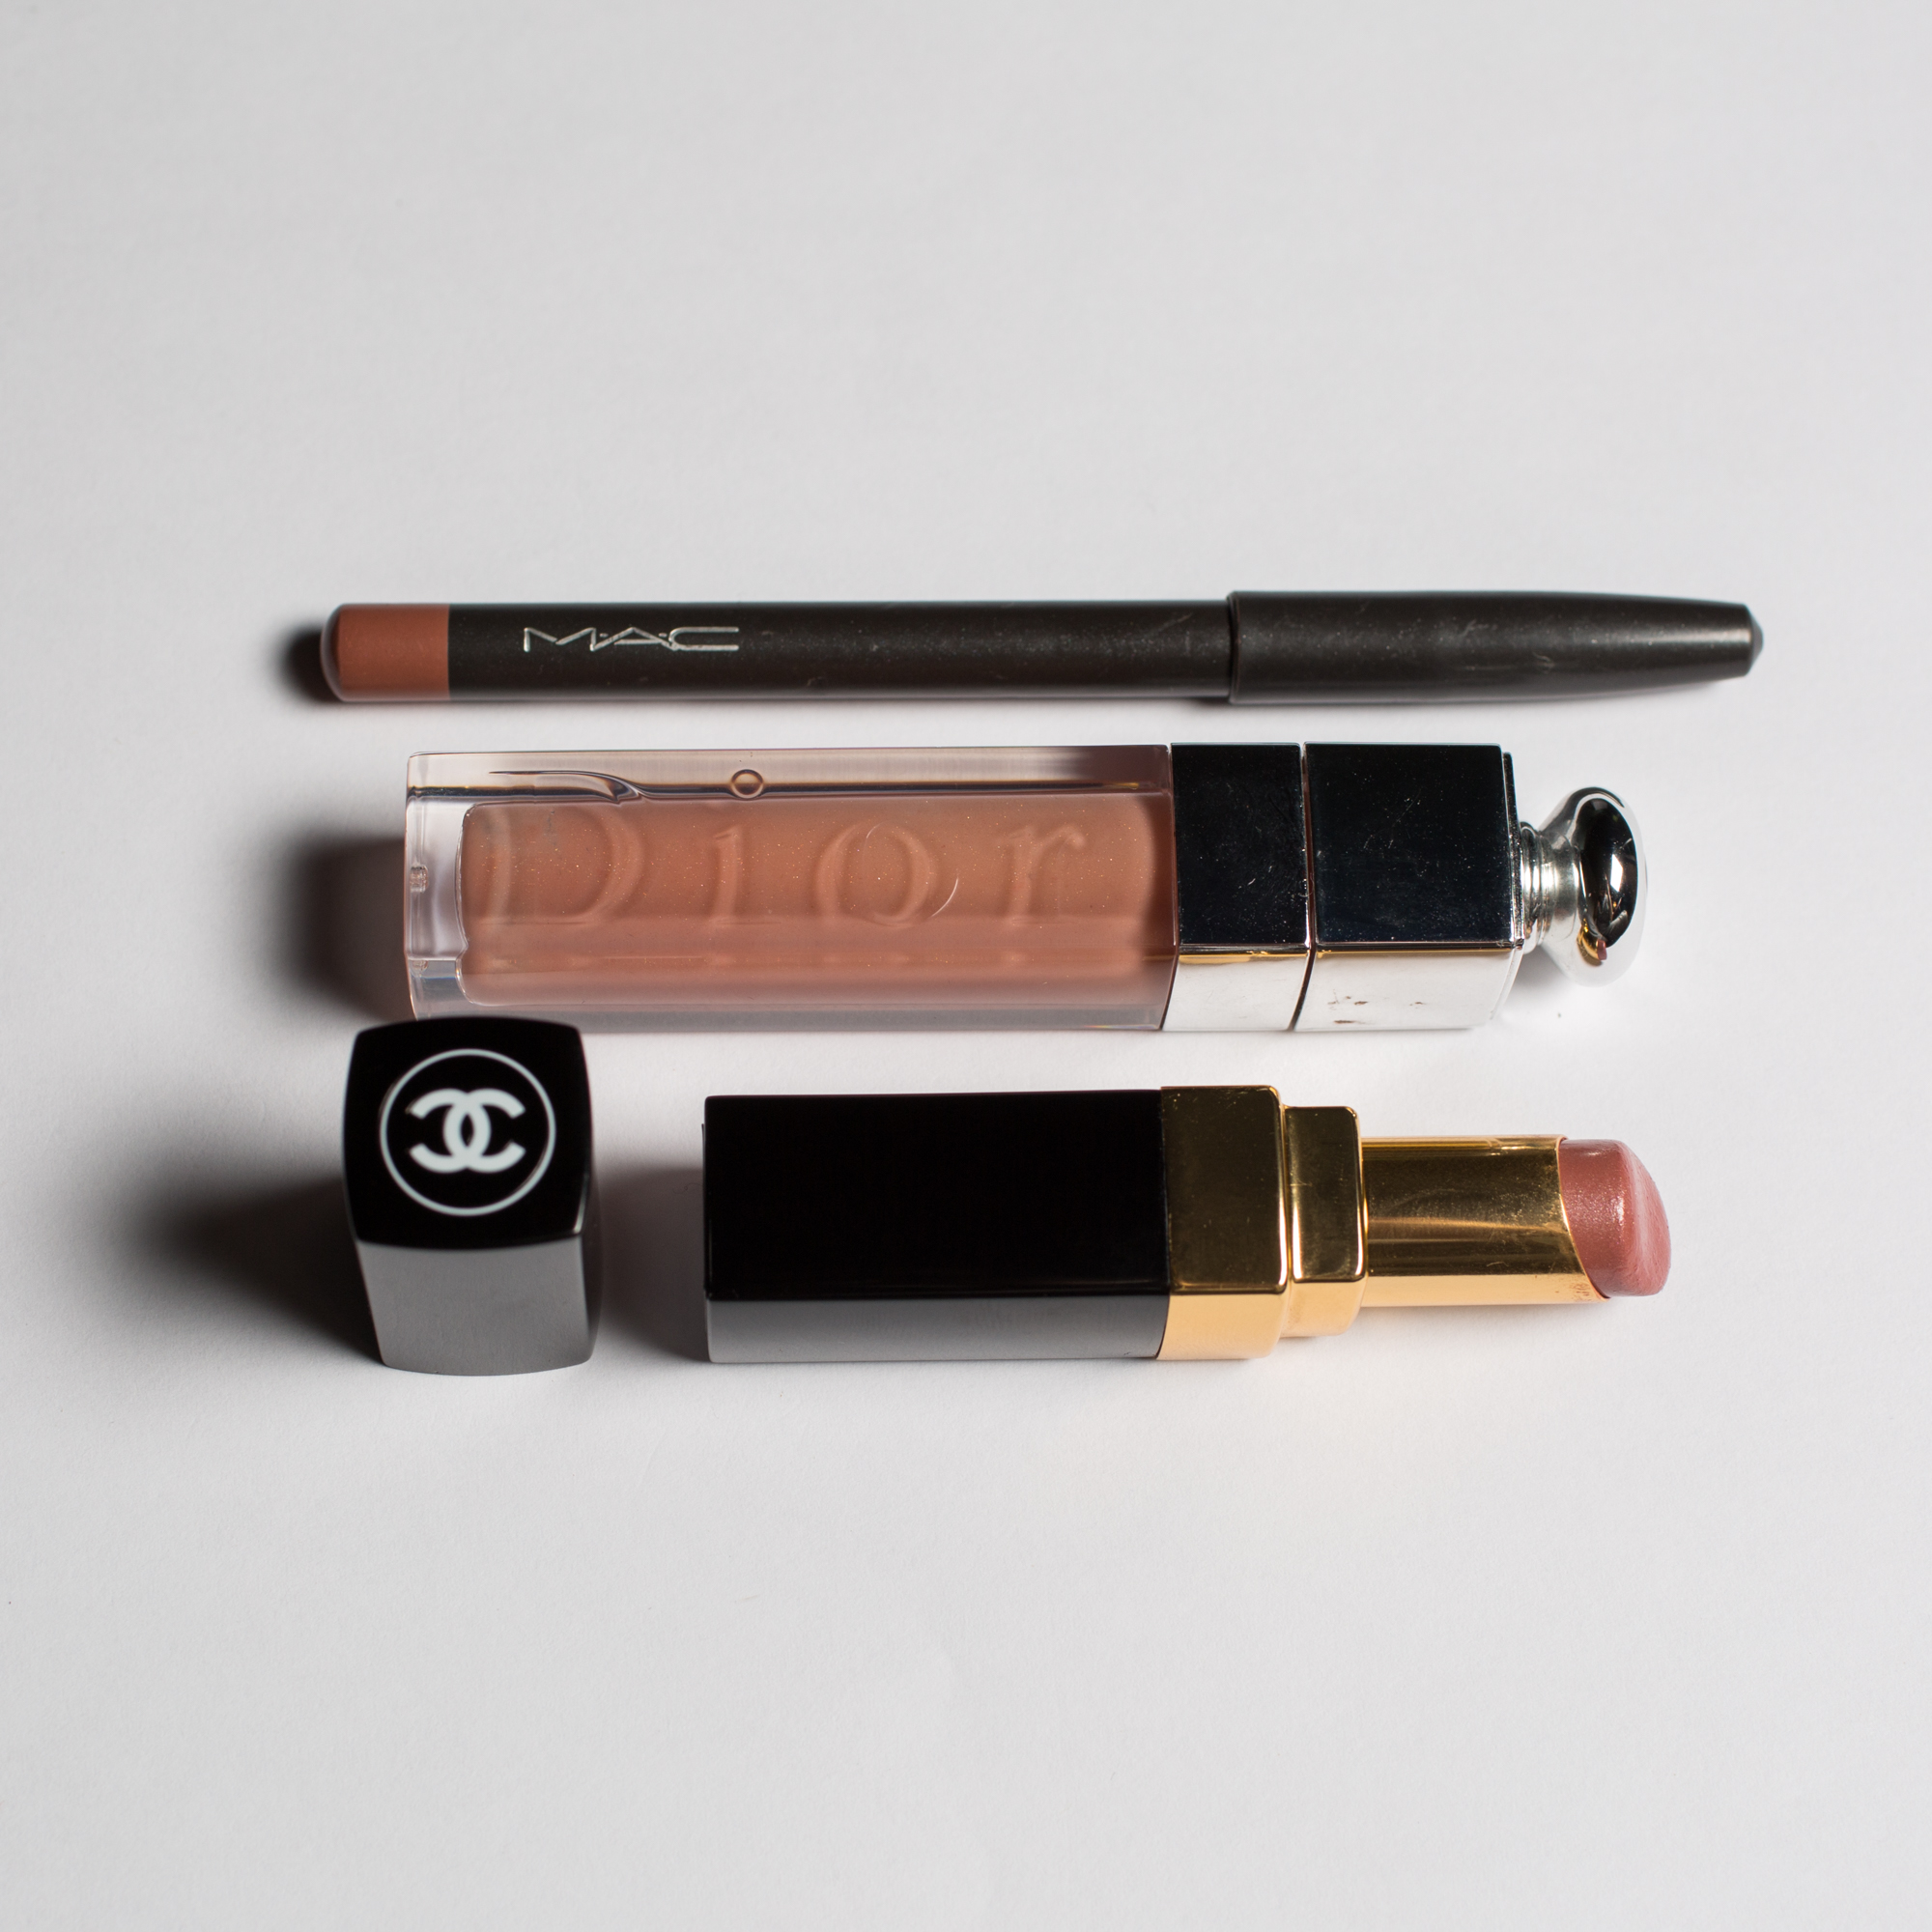 perfect nude lips by beauty blogger Mademoiselle jules with Mac, Dior, Chanel